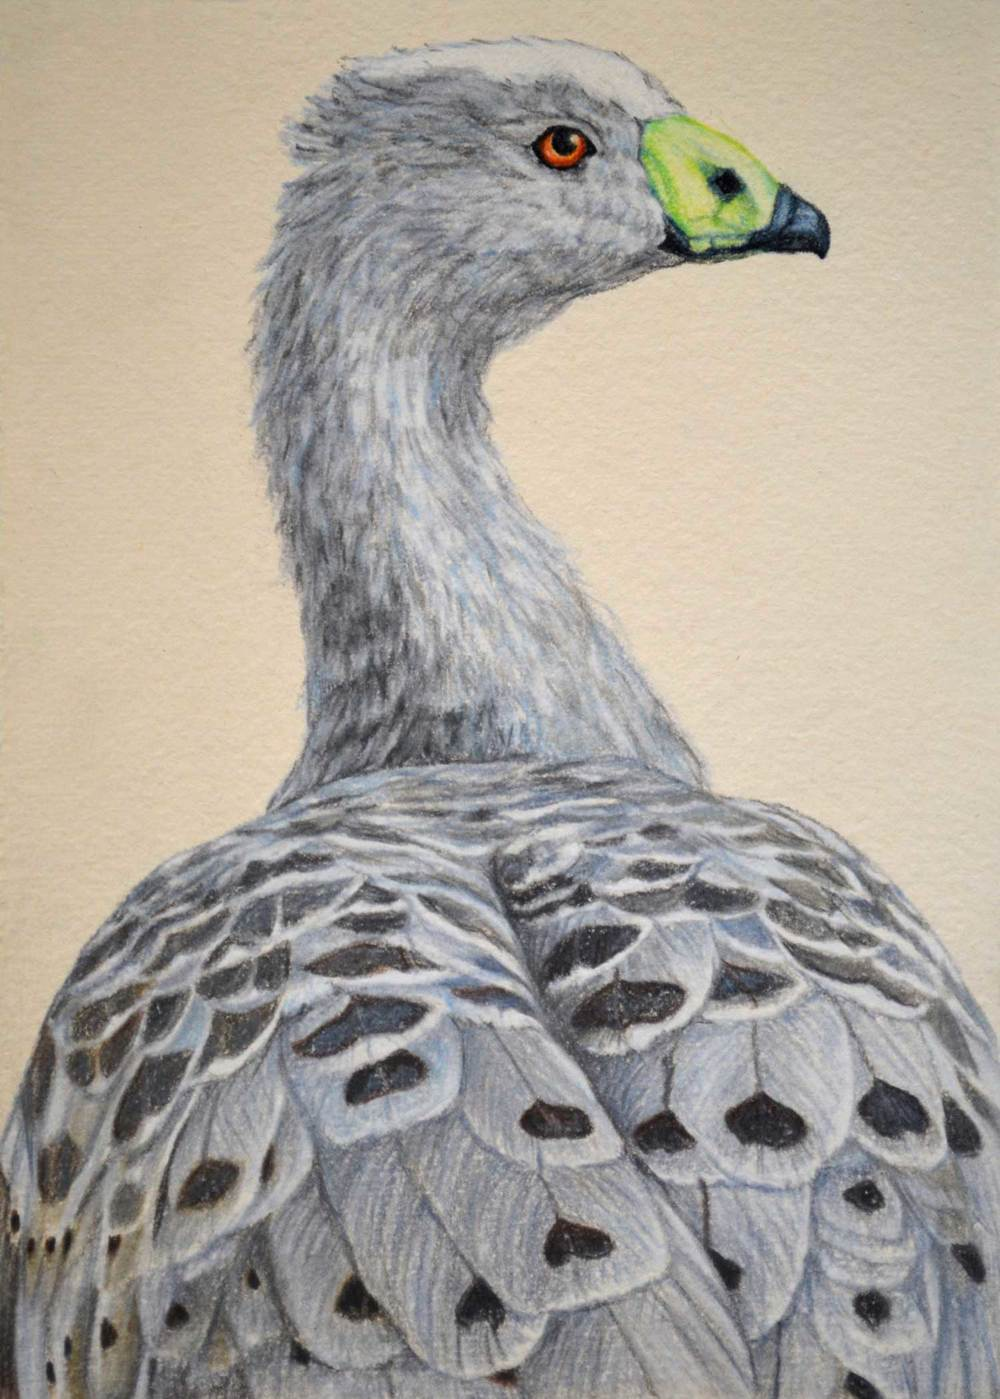 cape-barren-goose-2-drawing-rachel-newling.jpg